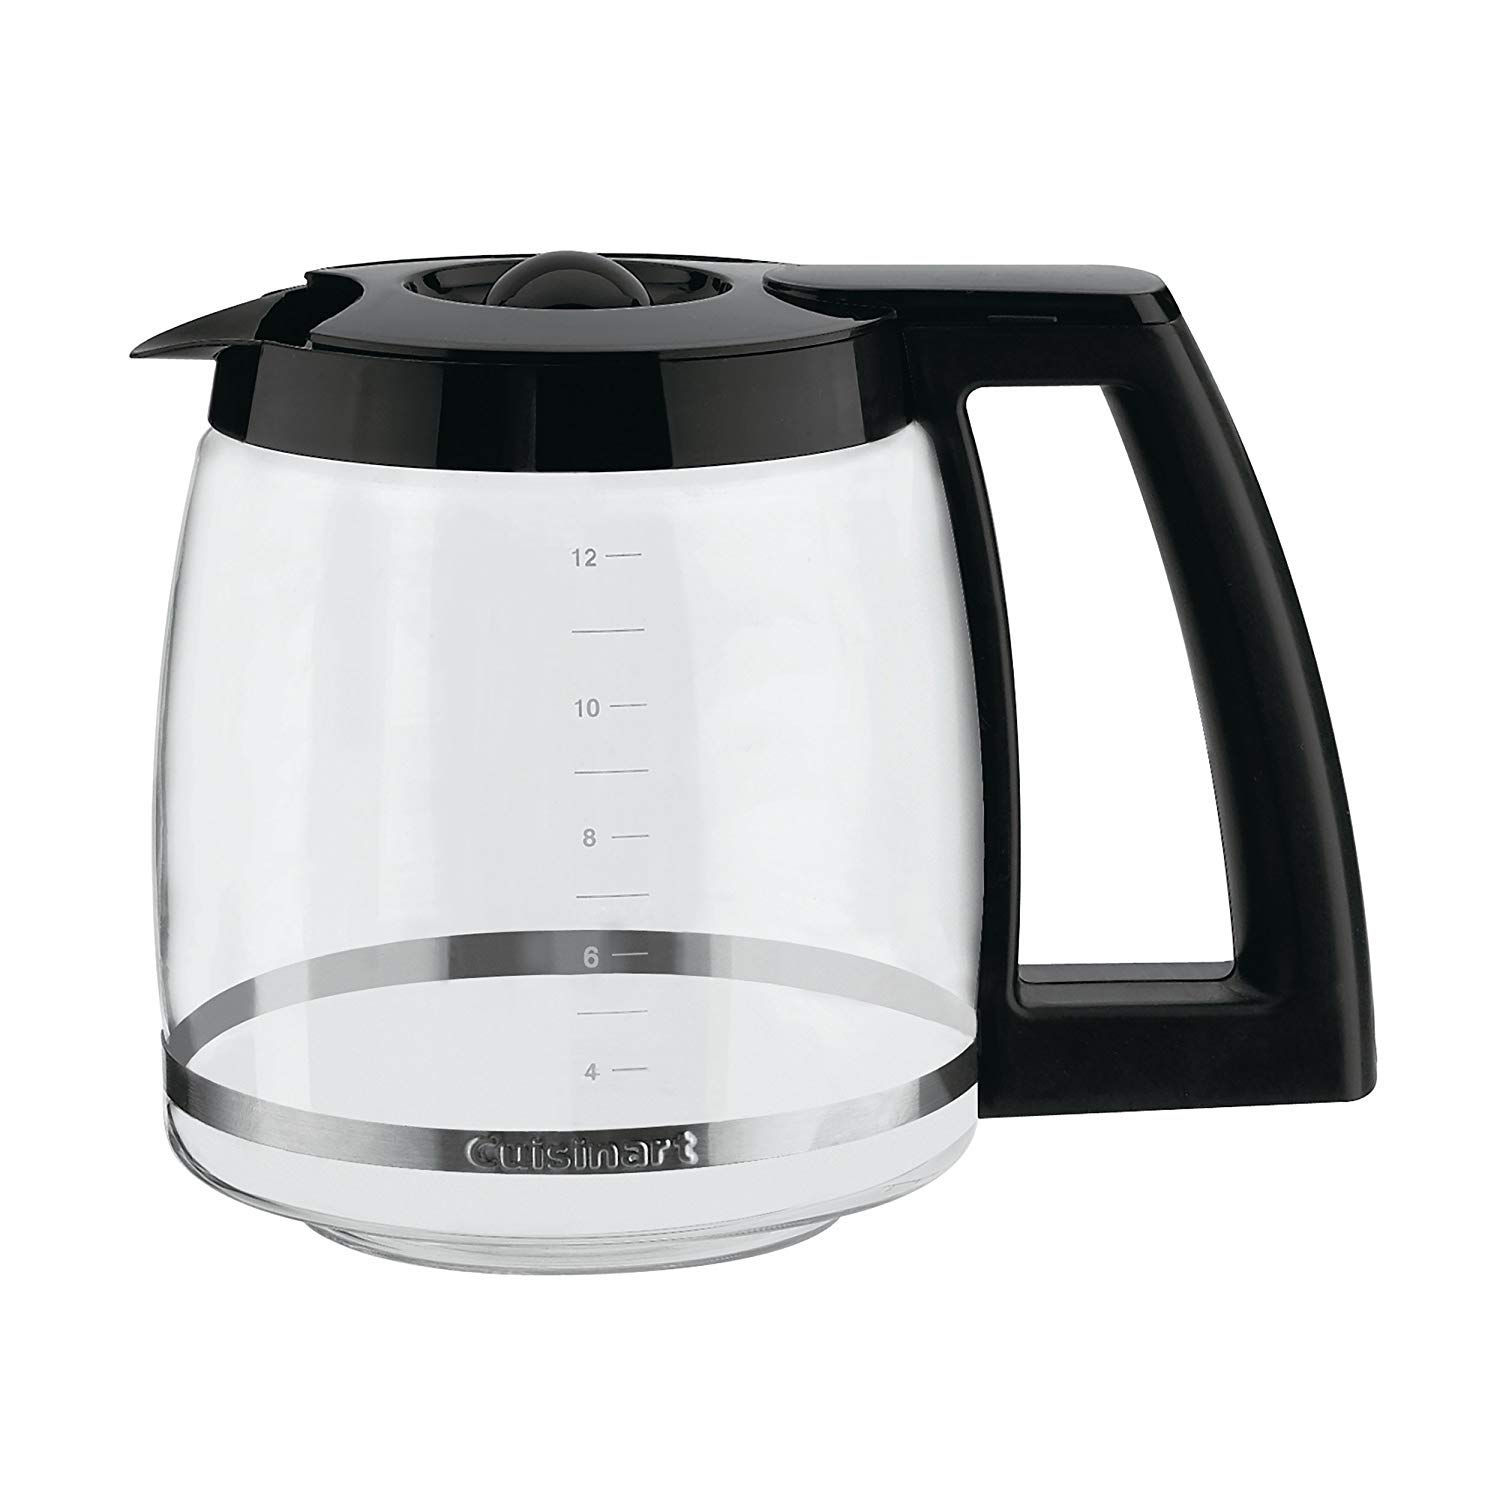 Cuisinart DCC-1200 12 Cup Coffeemaker, Black/Silver With Filters by Cuisinart (Image #1)